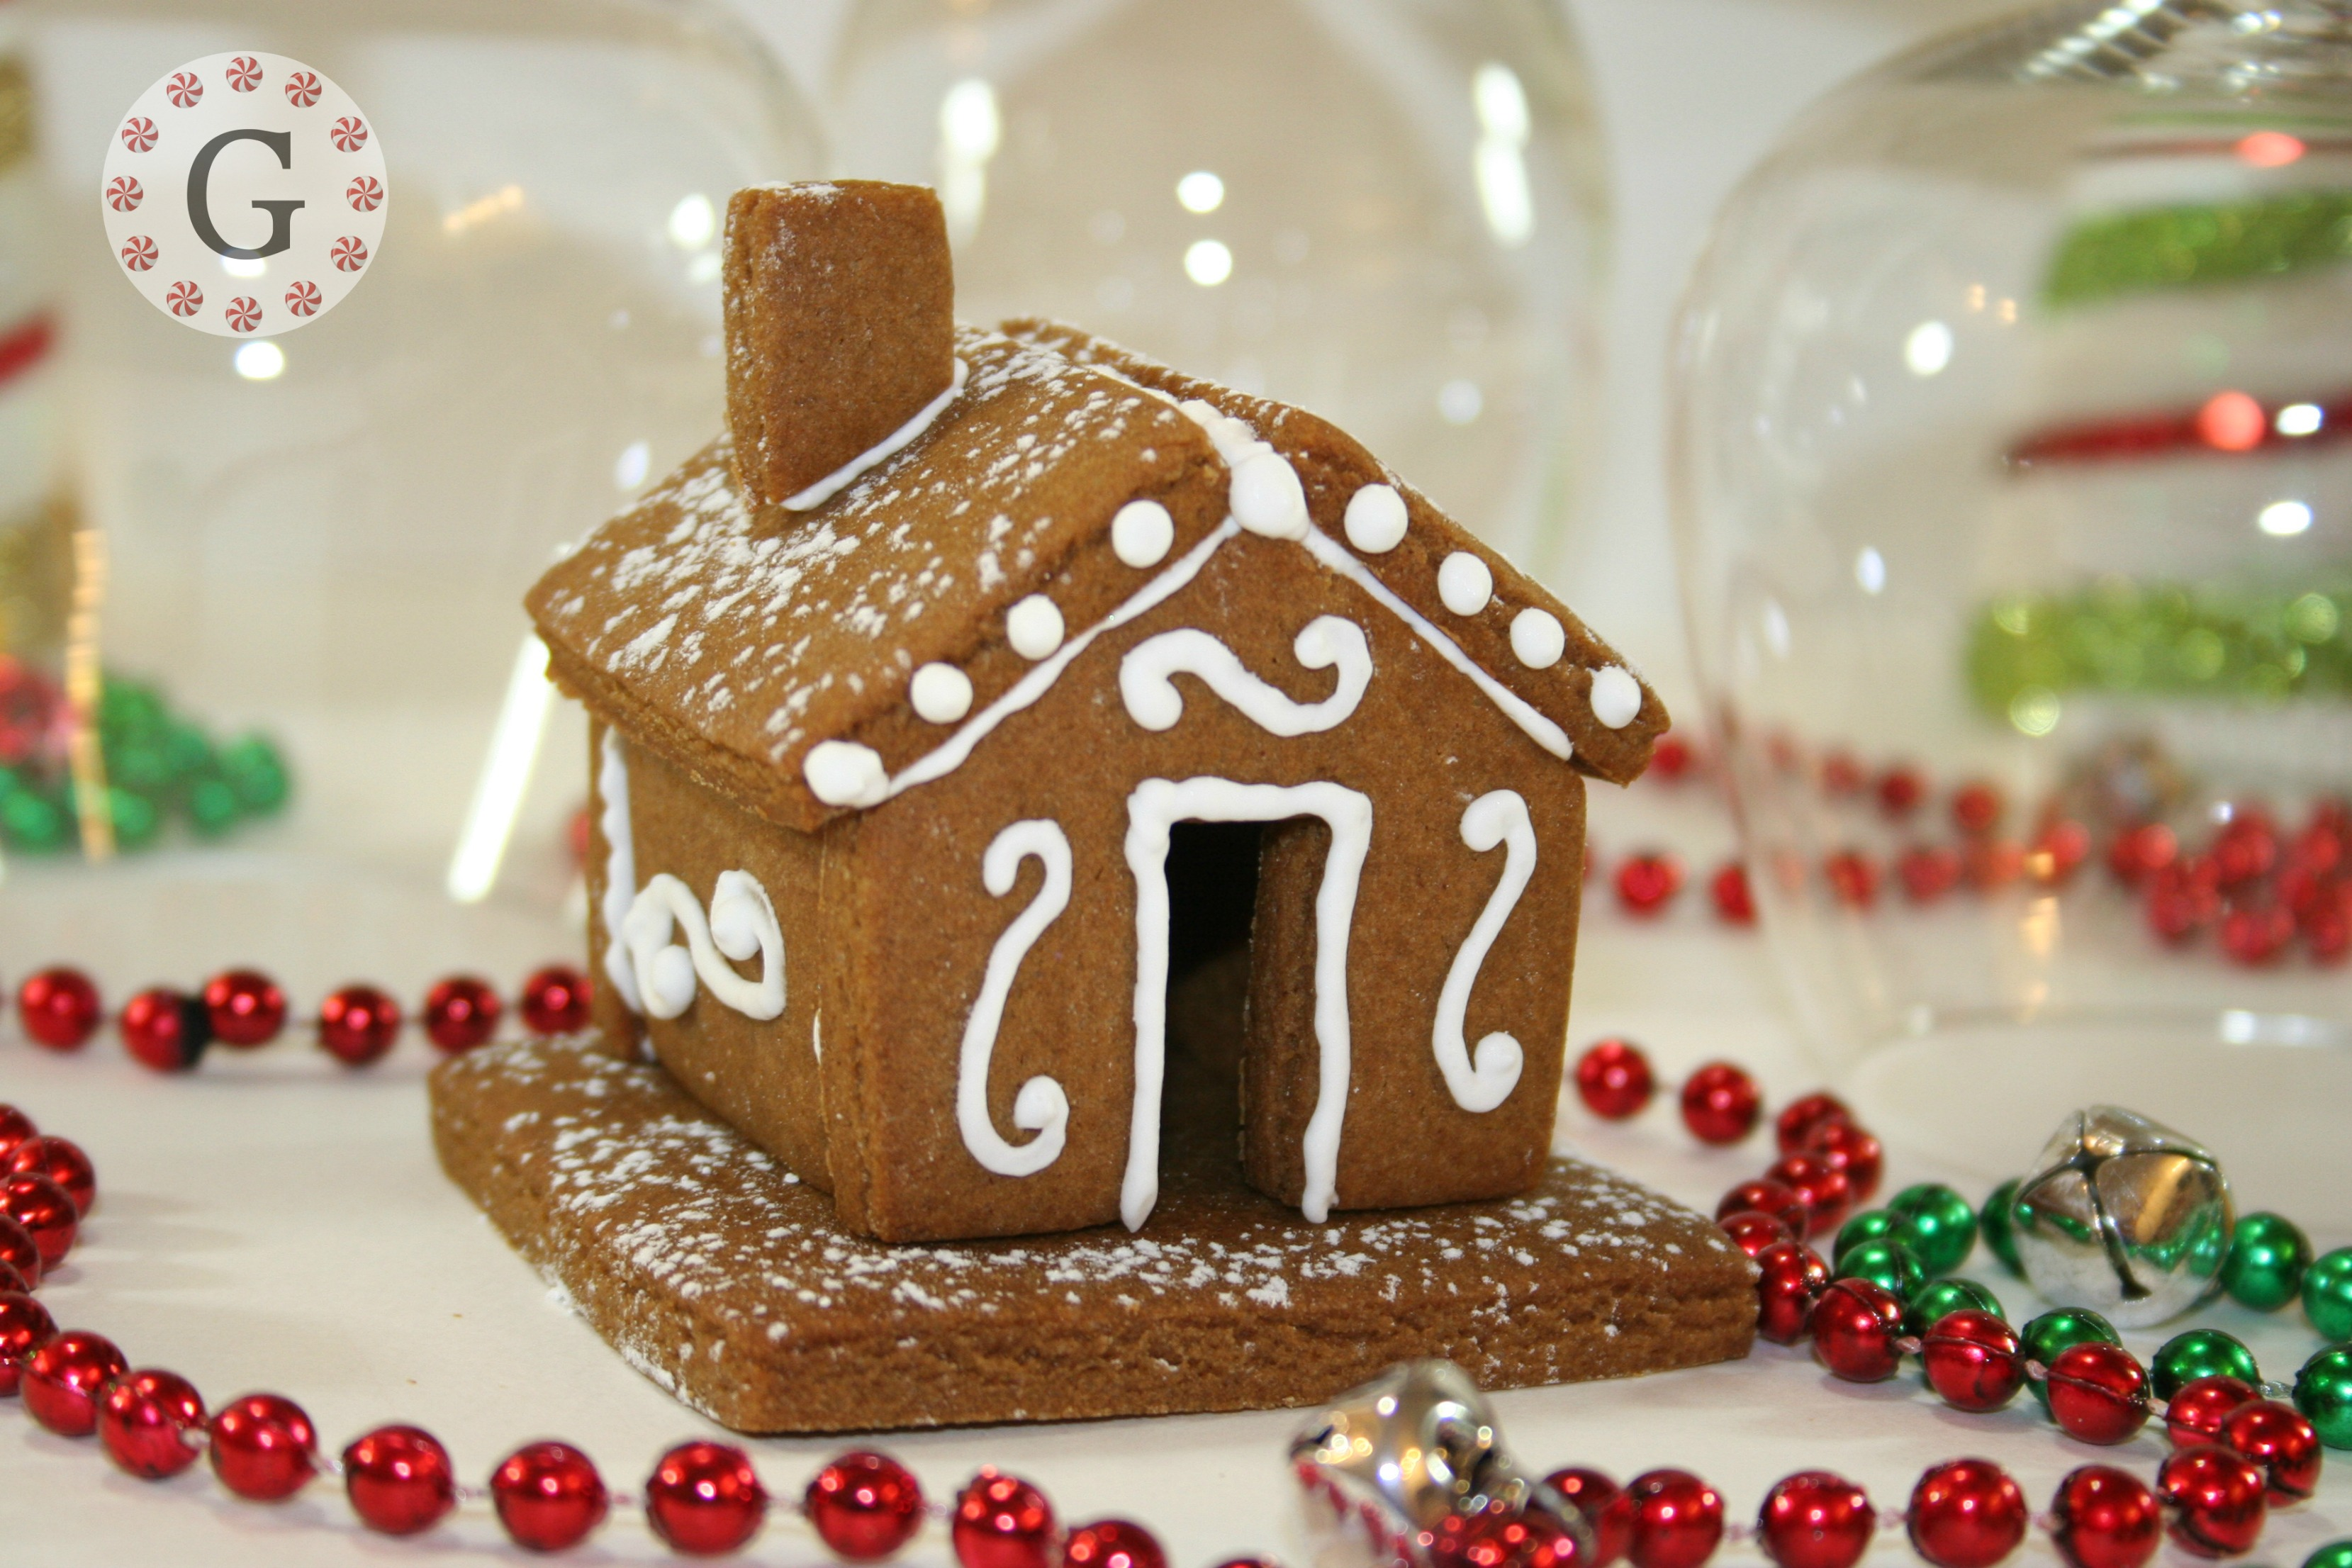 Gingerbread House Goes To The Dogs Gingerbread House Lane